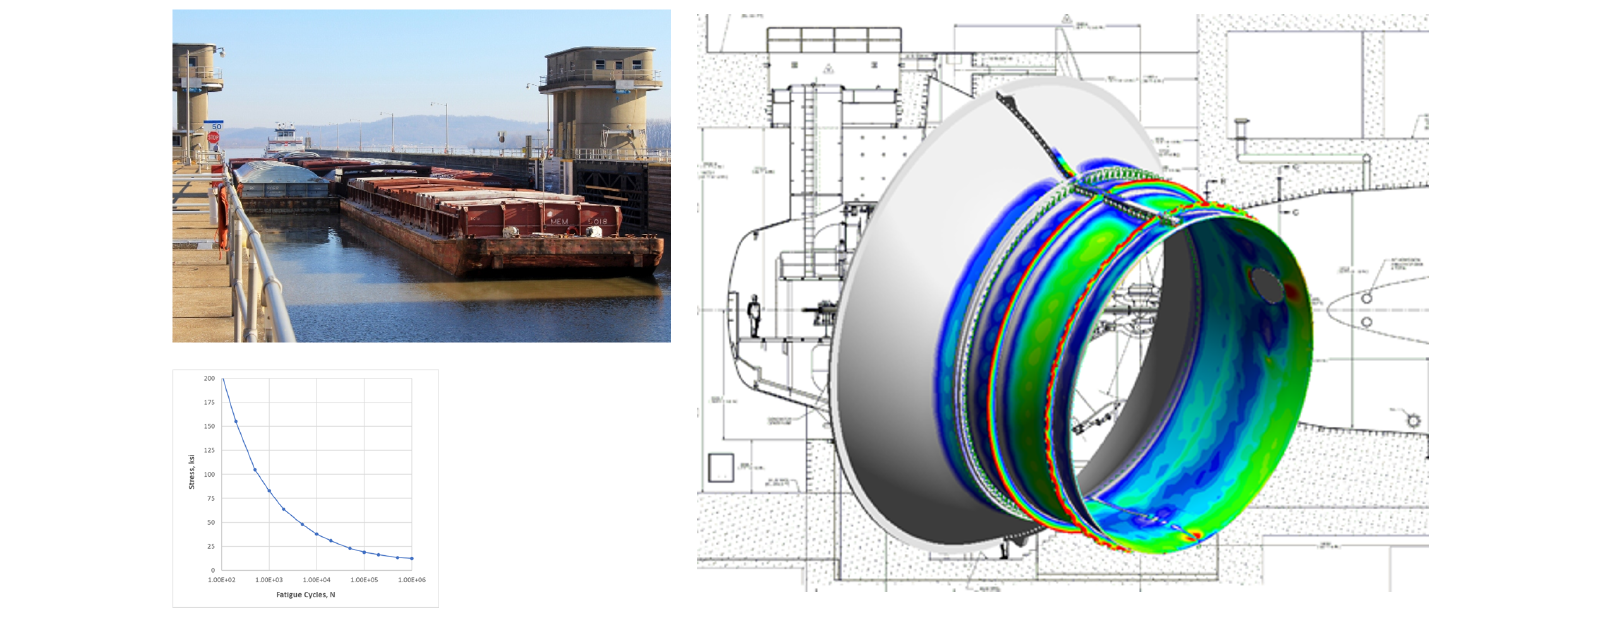 Stress and Fatigue (ASME) Analysis of Hydroelectric Discharge Ring Turbine Nozzle - FEA Engineering Services